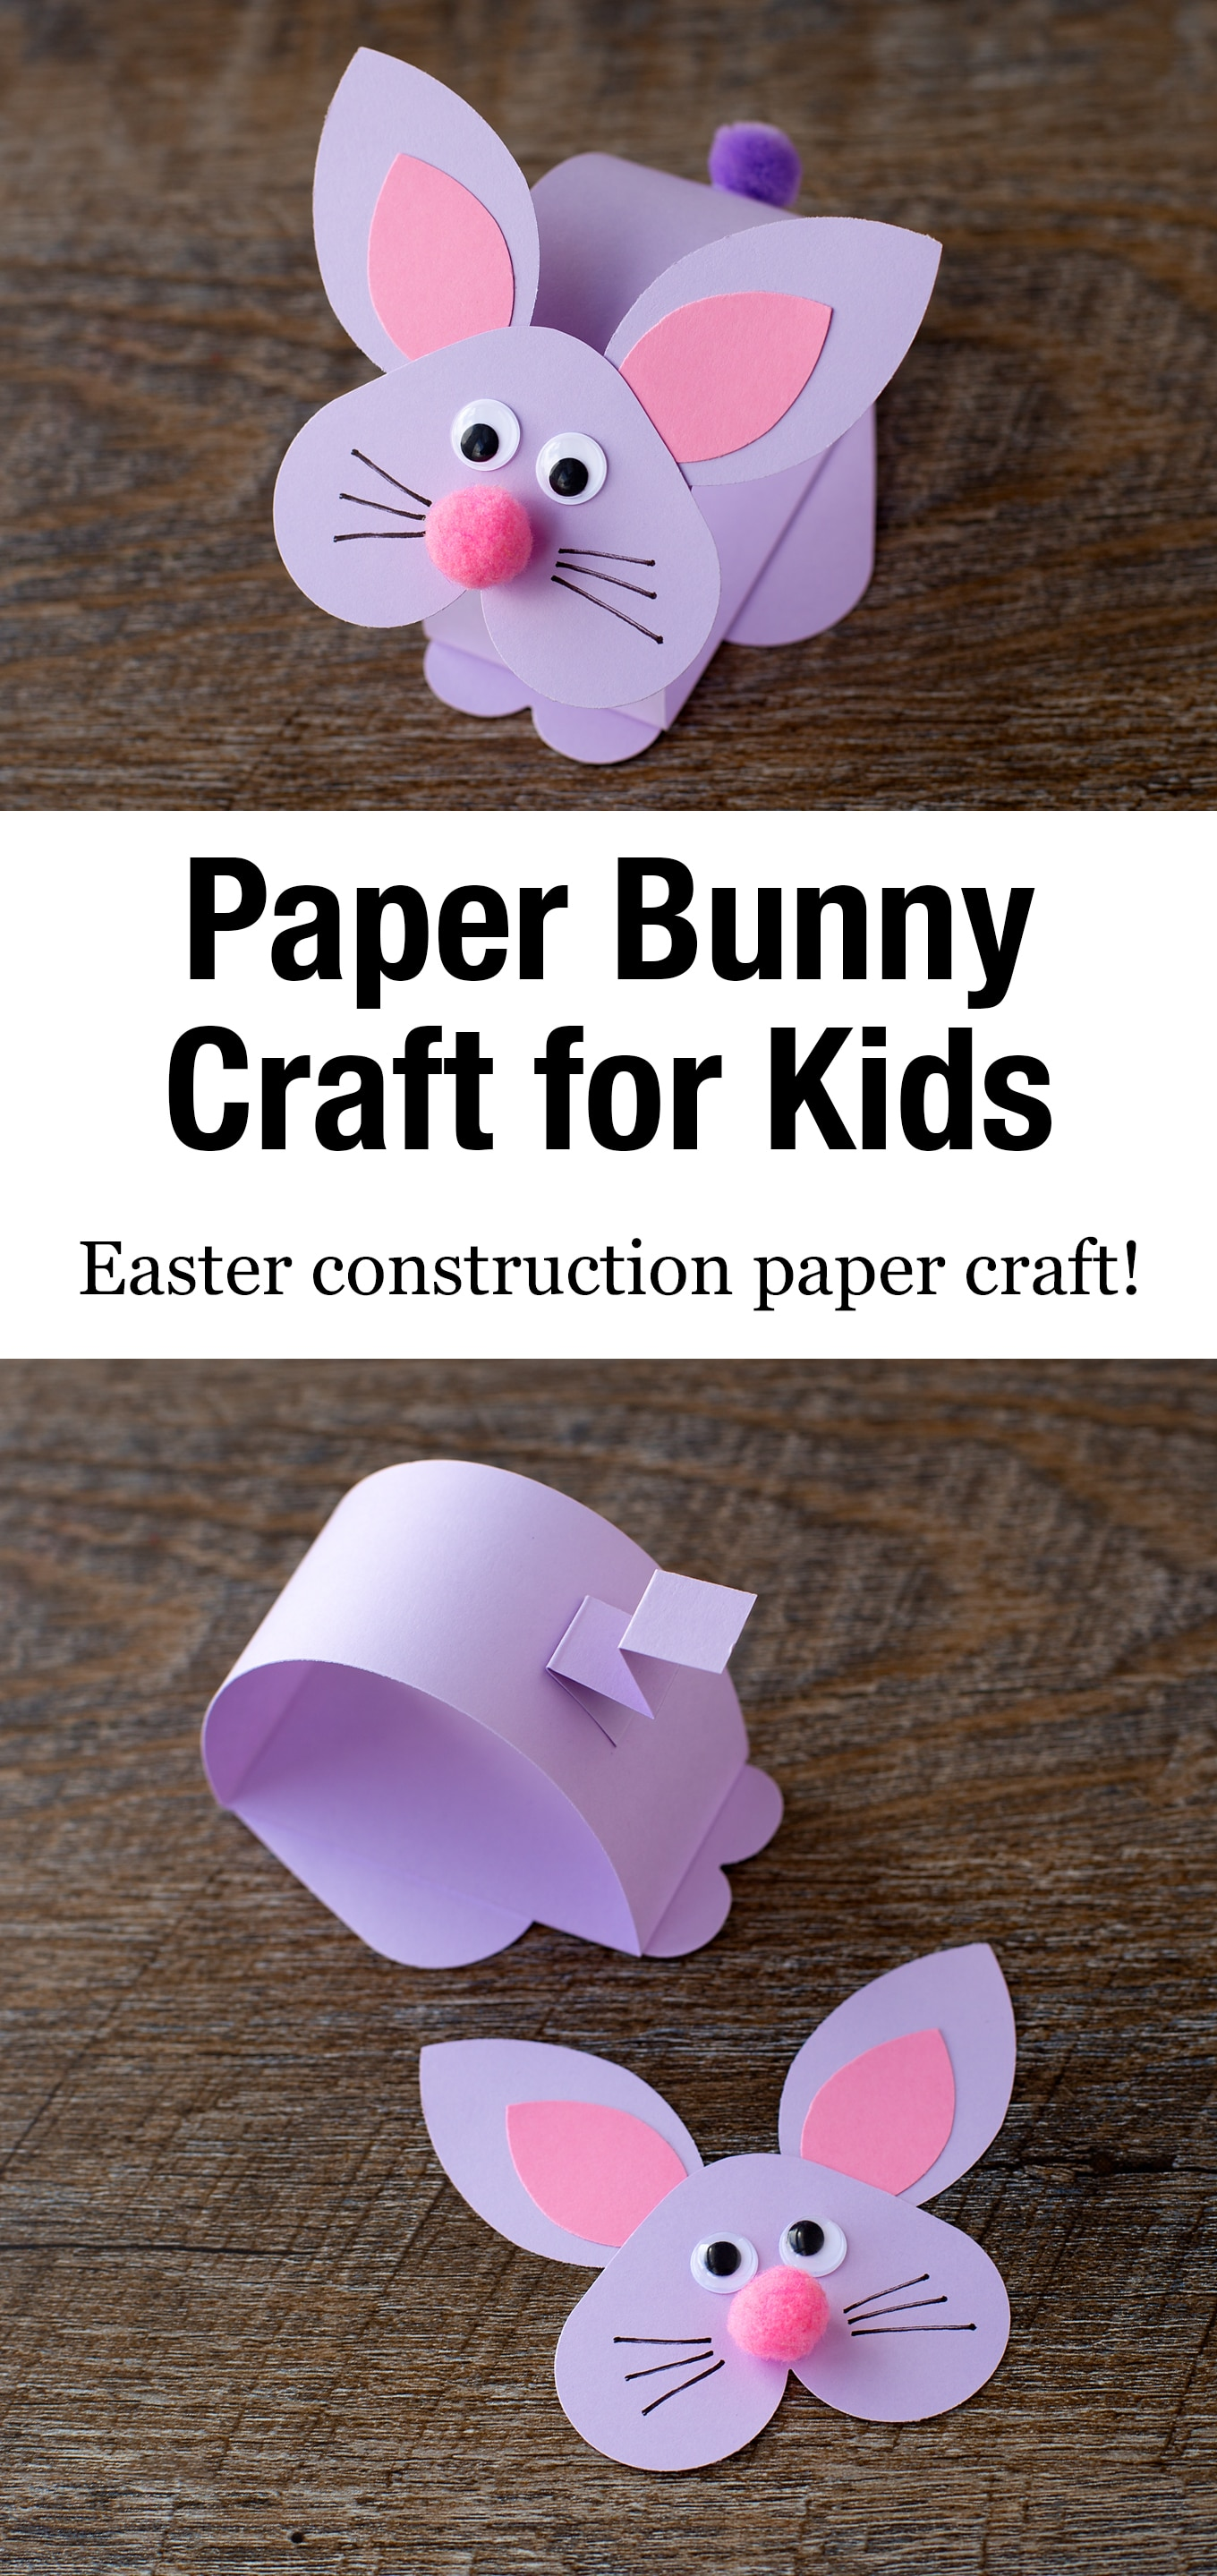 Just in time for Easter, kids of all ages will enjoy making an easy and fun paper bobble head bunny craft at school or home. #bunnycraft #eastercraft #kidscrafts via @firefliesandmudpies